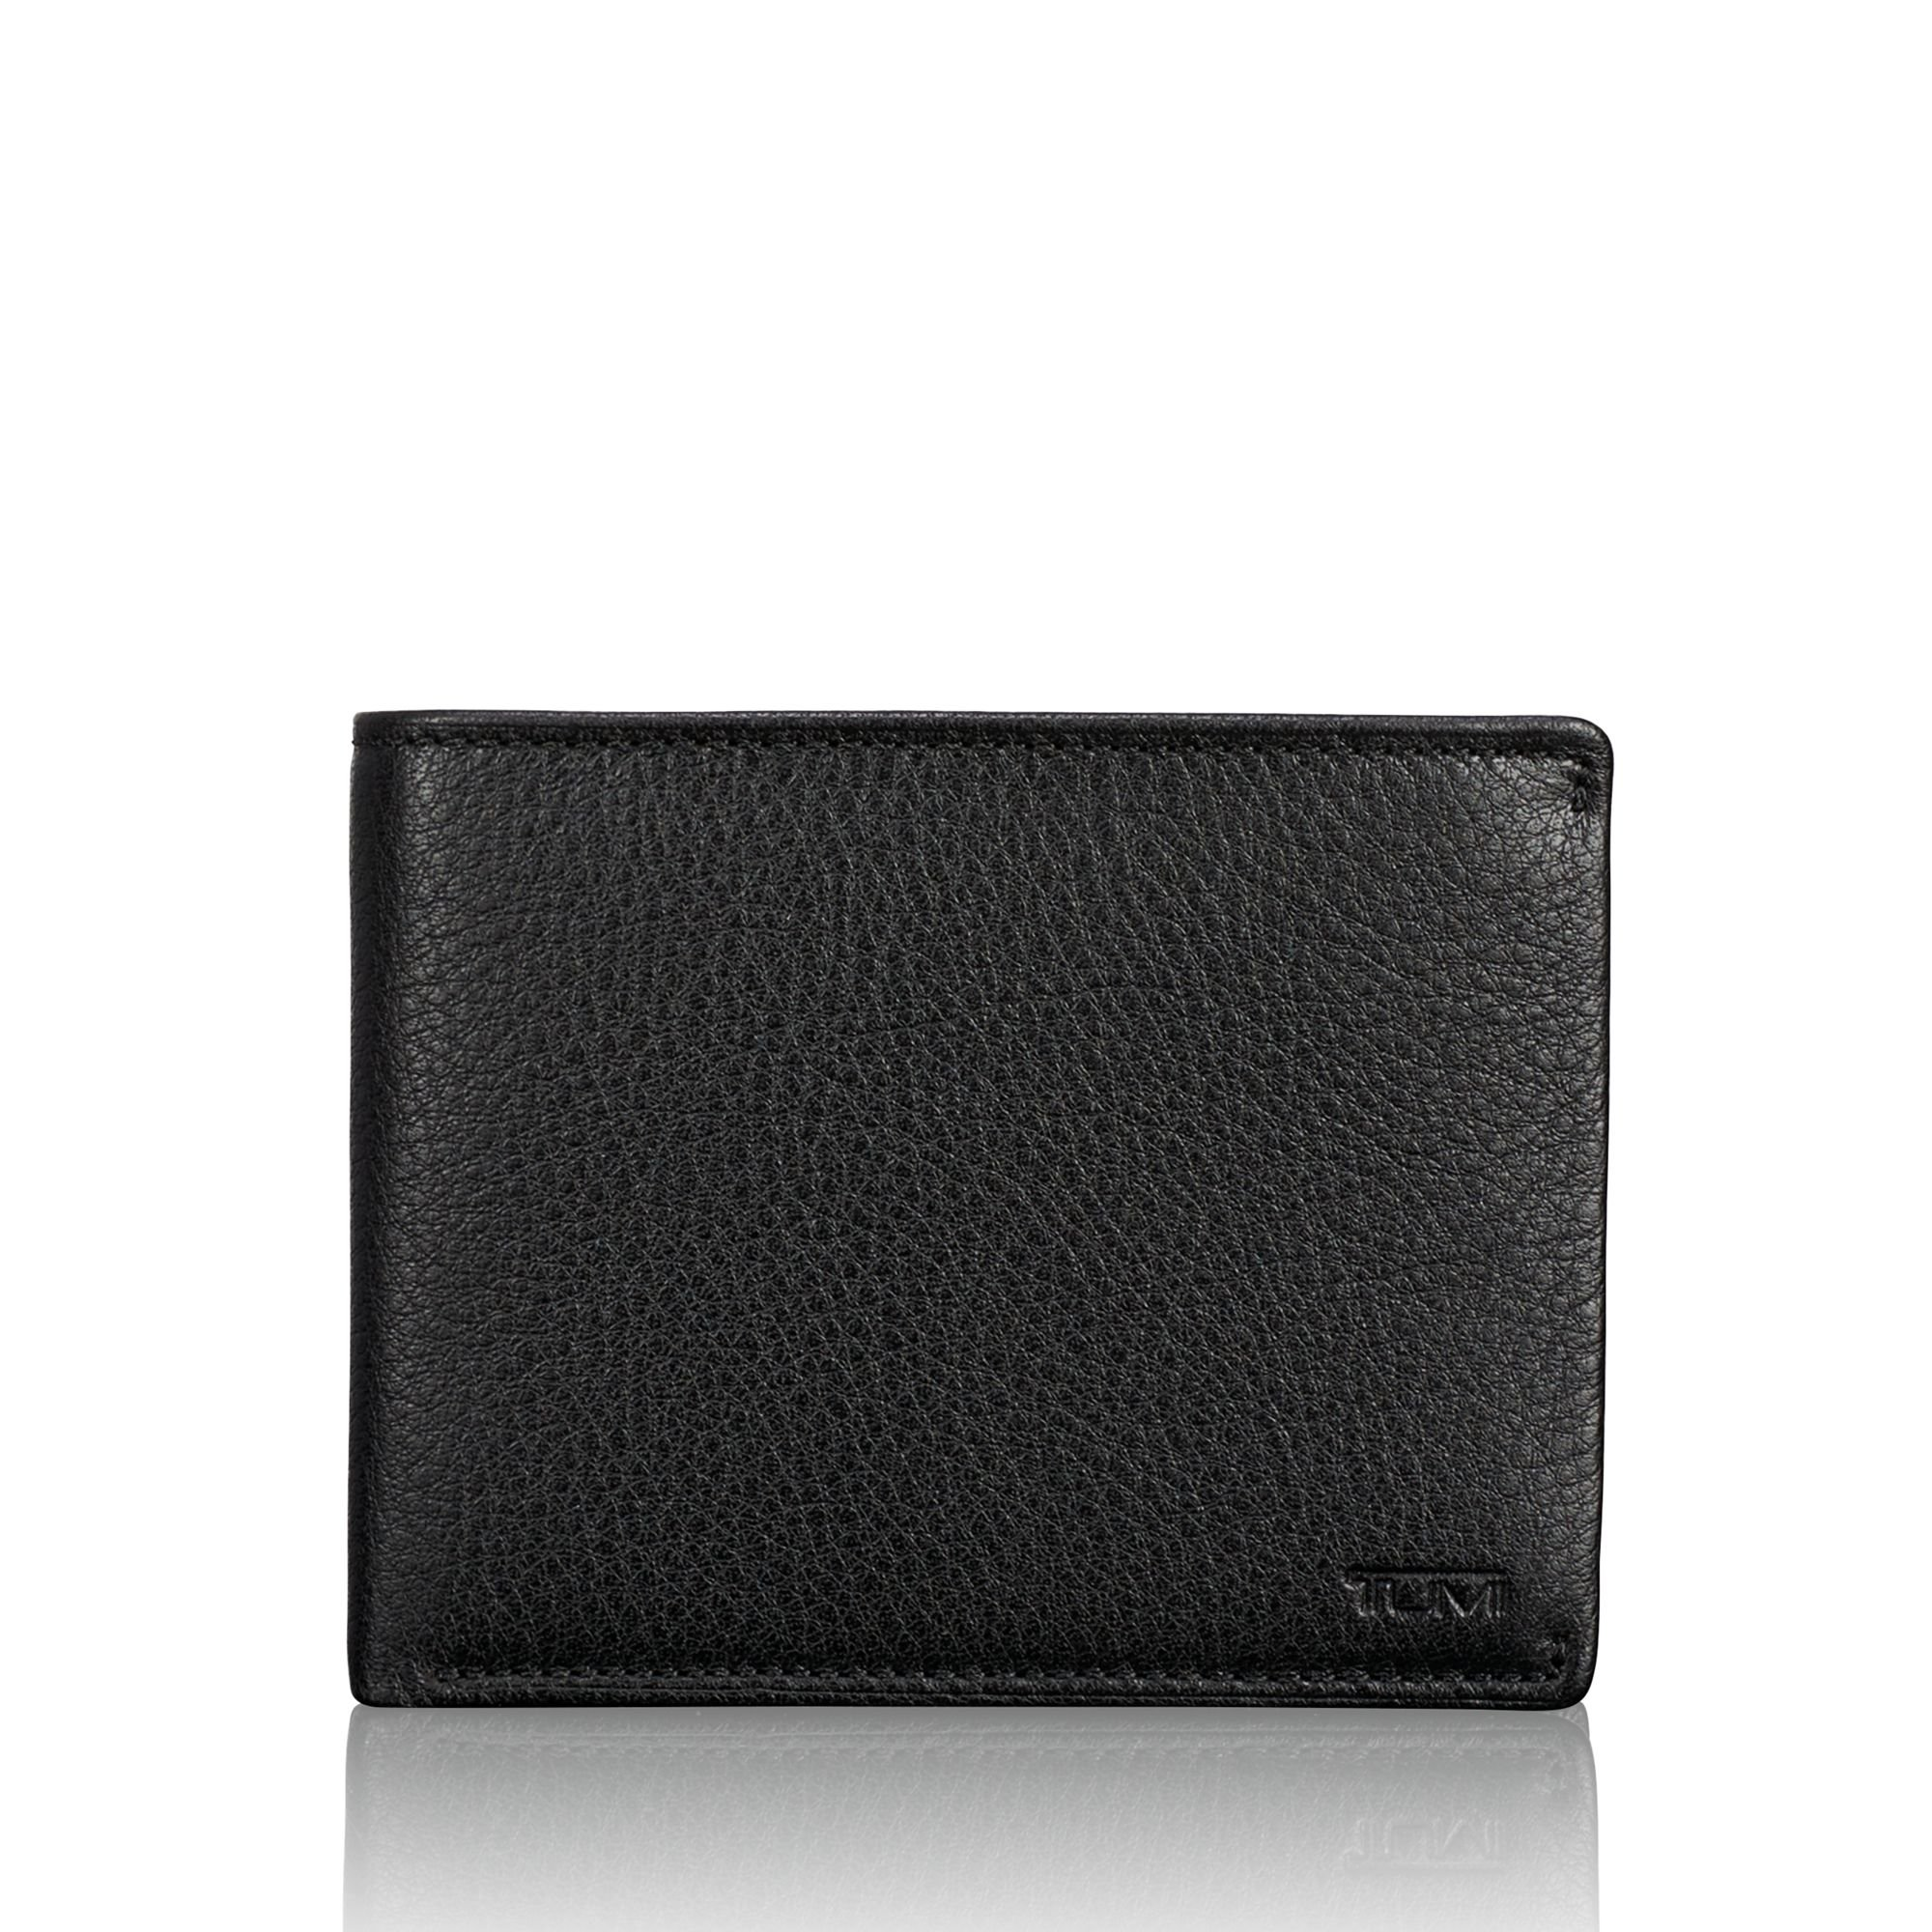 Tumi Mens Nassau Global Wallet with Coin Pocket Black Textured One Size